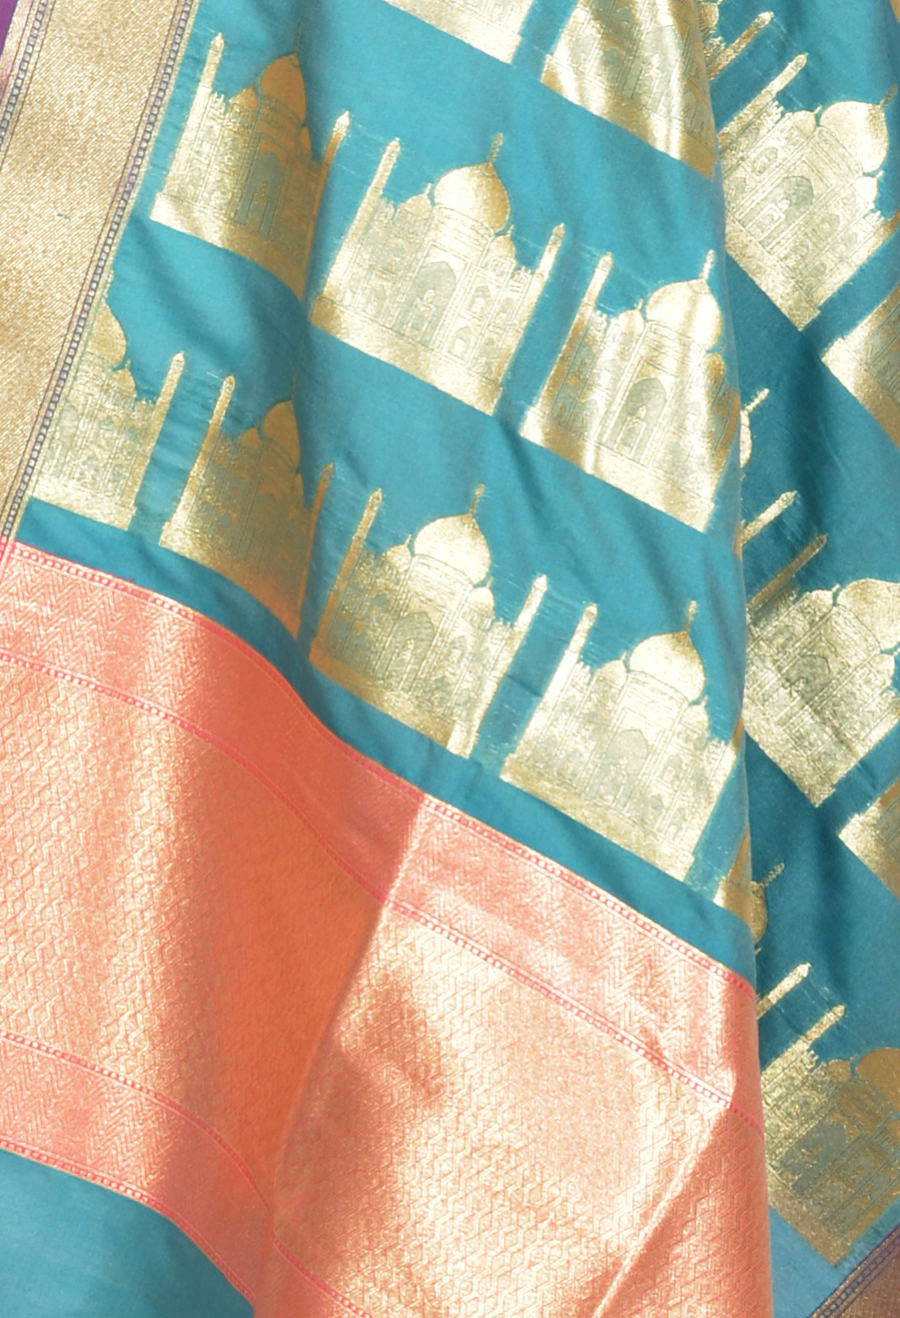 Sea green art silk Banarasi dupatta with Taj mahal motifs (2) Close up